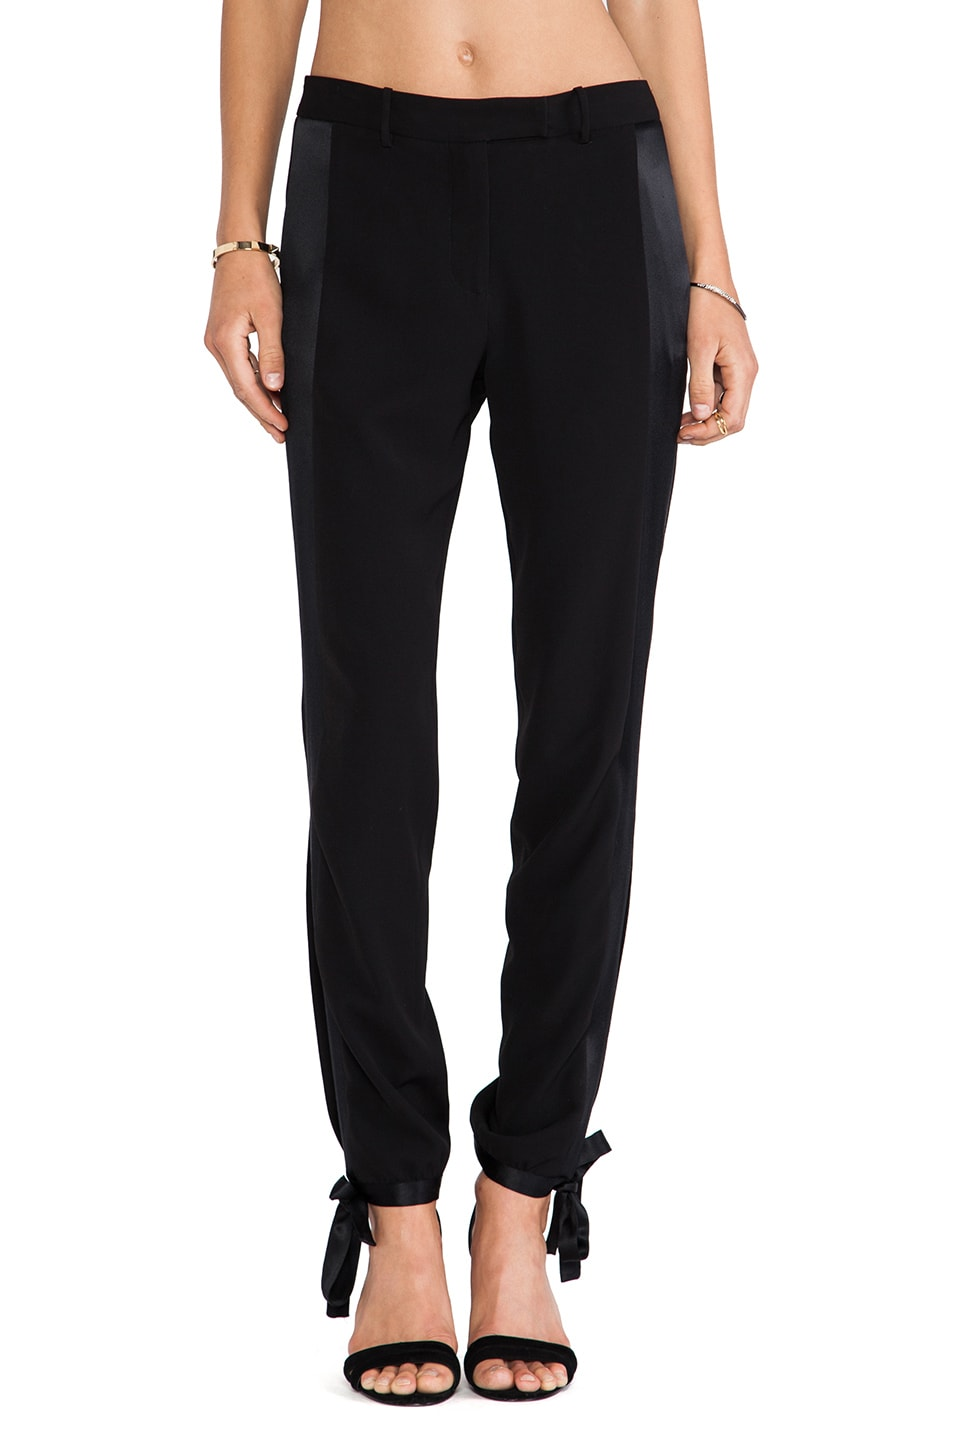 Halston Heritage Ankle Tie Pants in Black